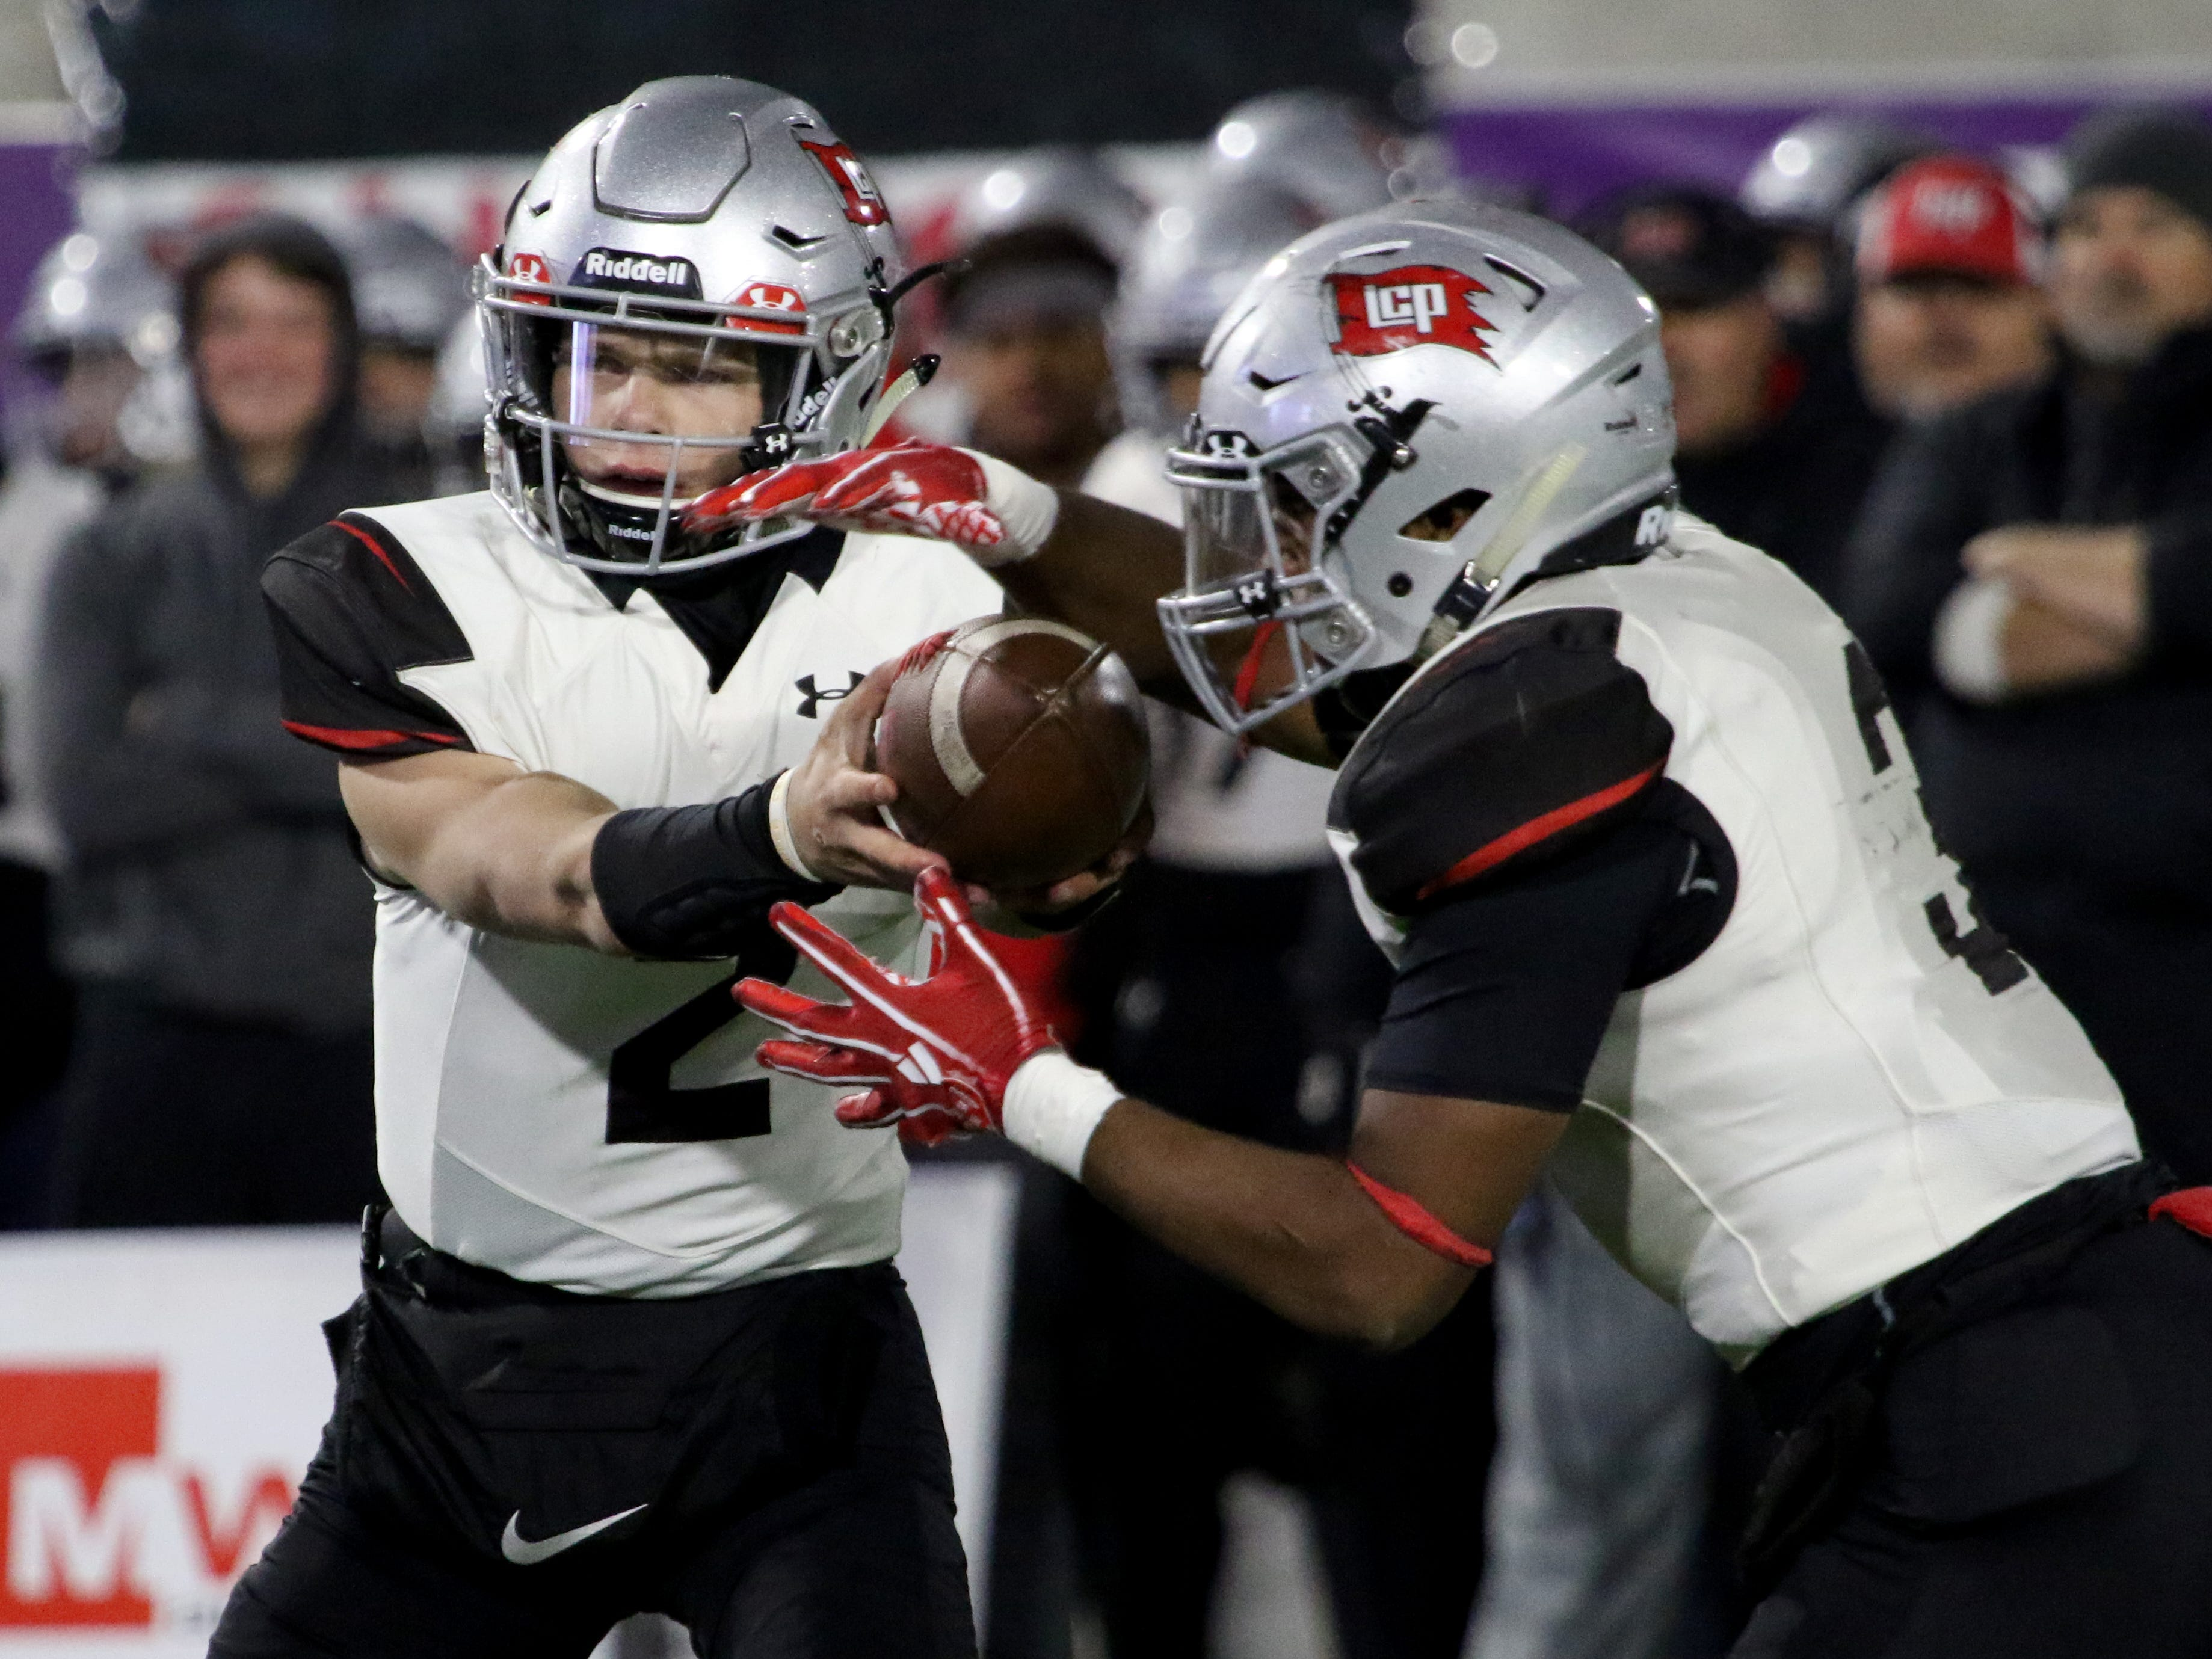 Lubbock Cooper's Brenden Mehl hands the ball off to Isaiah Johnson in the game against Rider Thursday, Dec. 6, 2018, at Wildcat Stadium in Abilene.